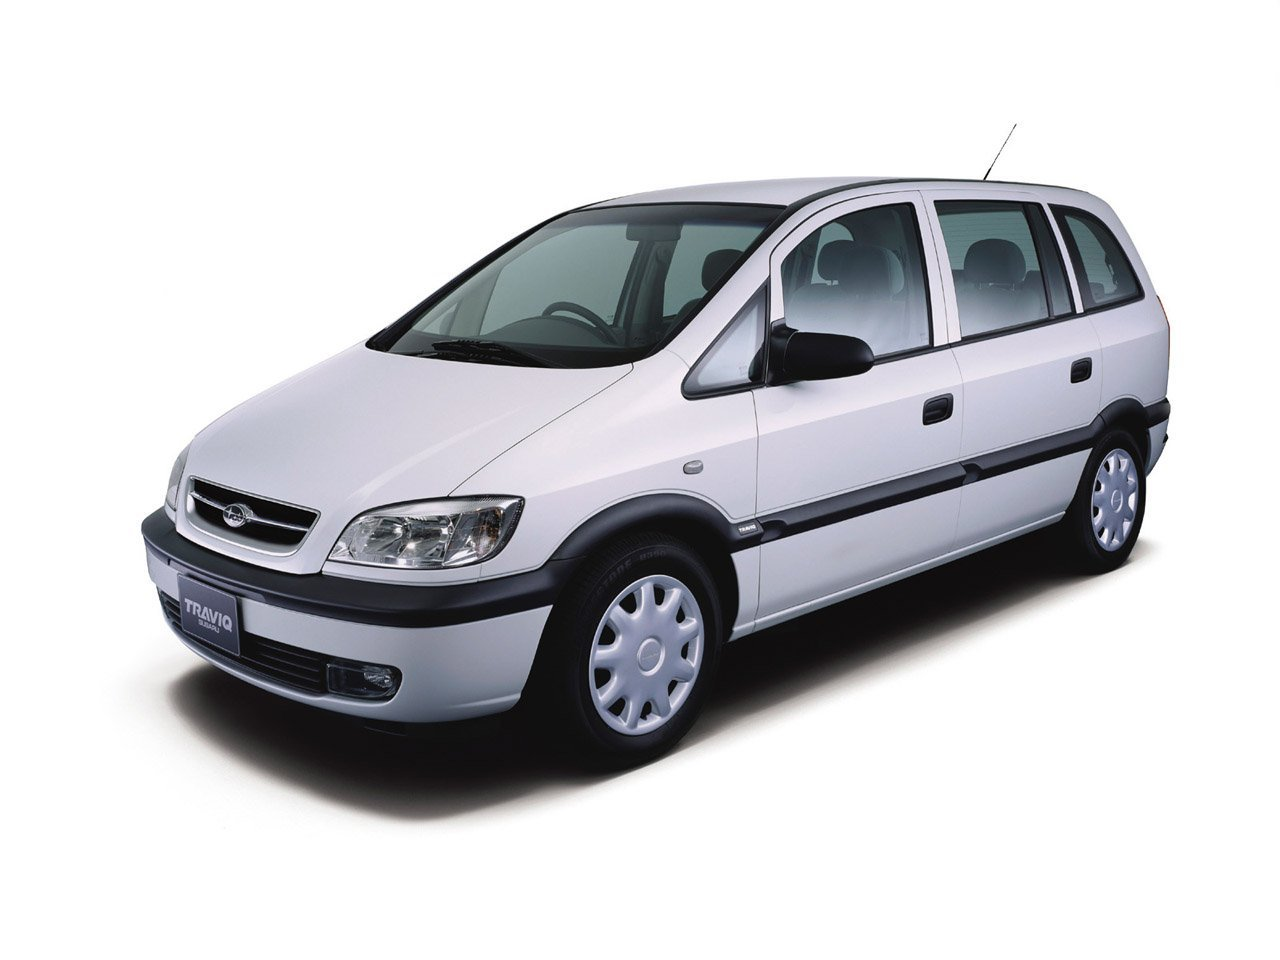 Автомобиль Subaru Traviq